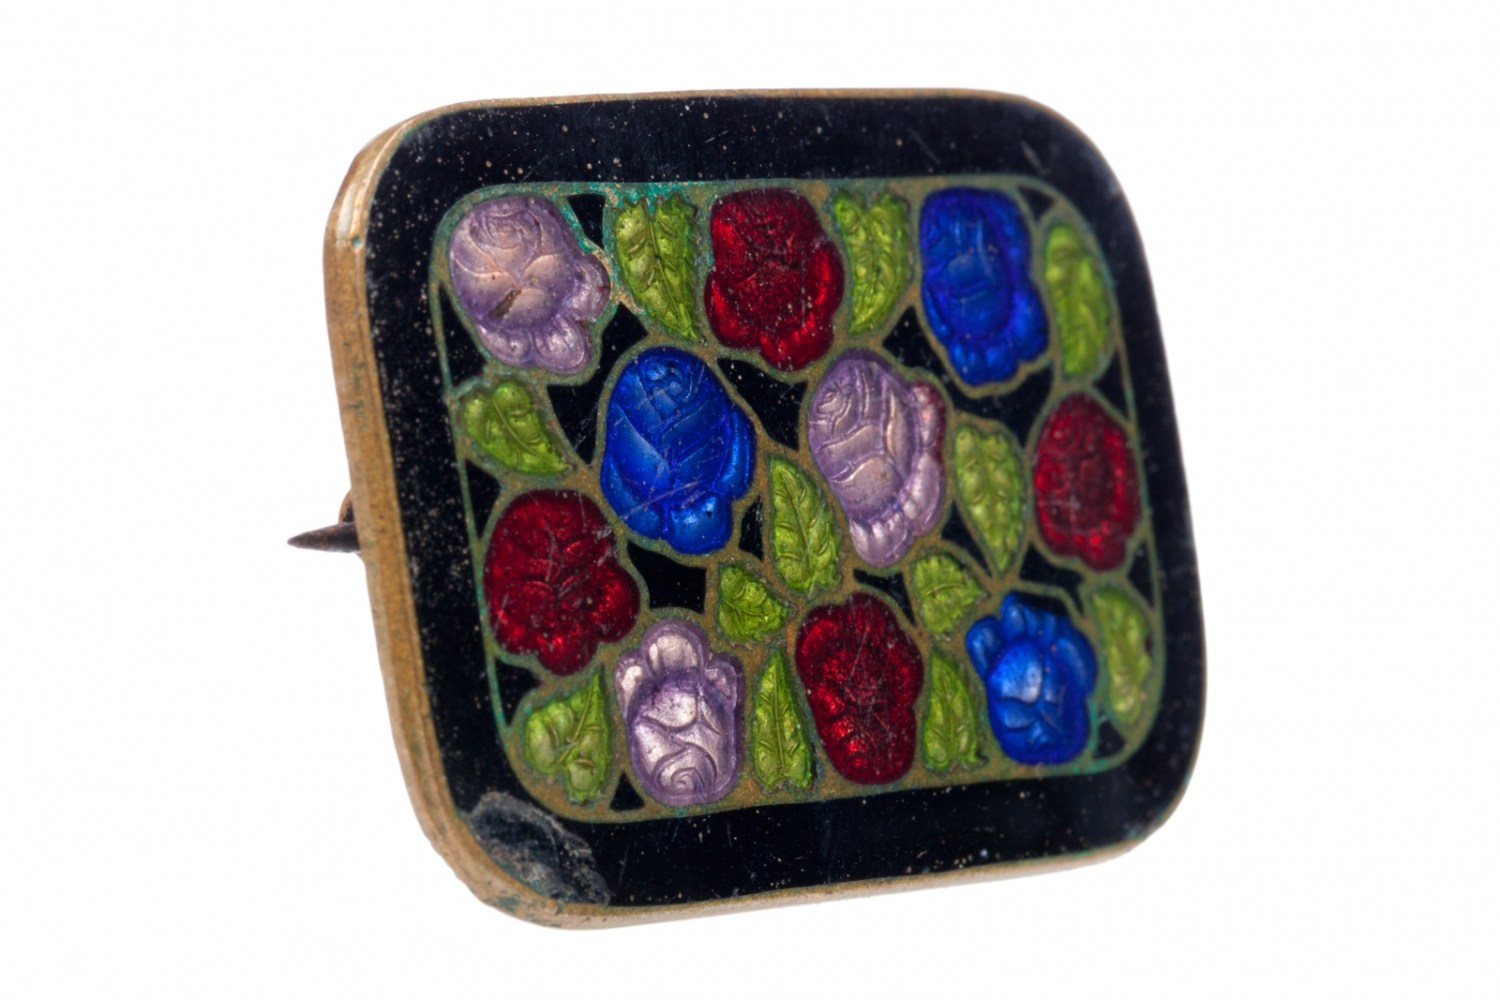 A brooch made of cloisonné enamel on brass with a design of blue, pink and red flowers and green leaves